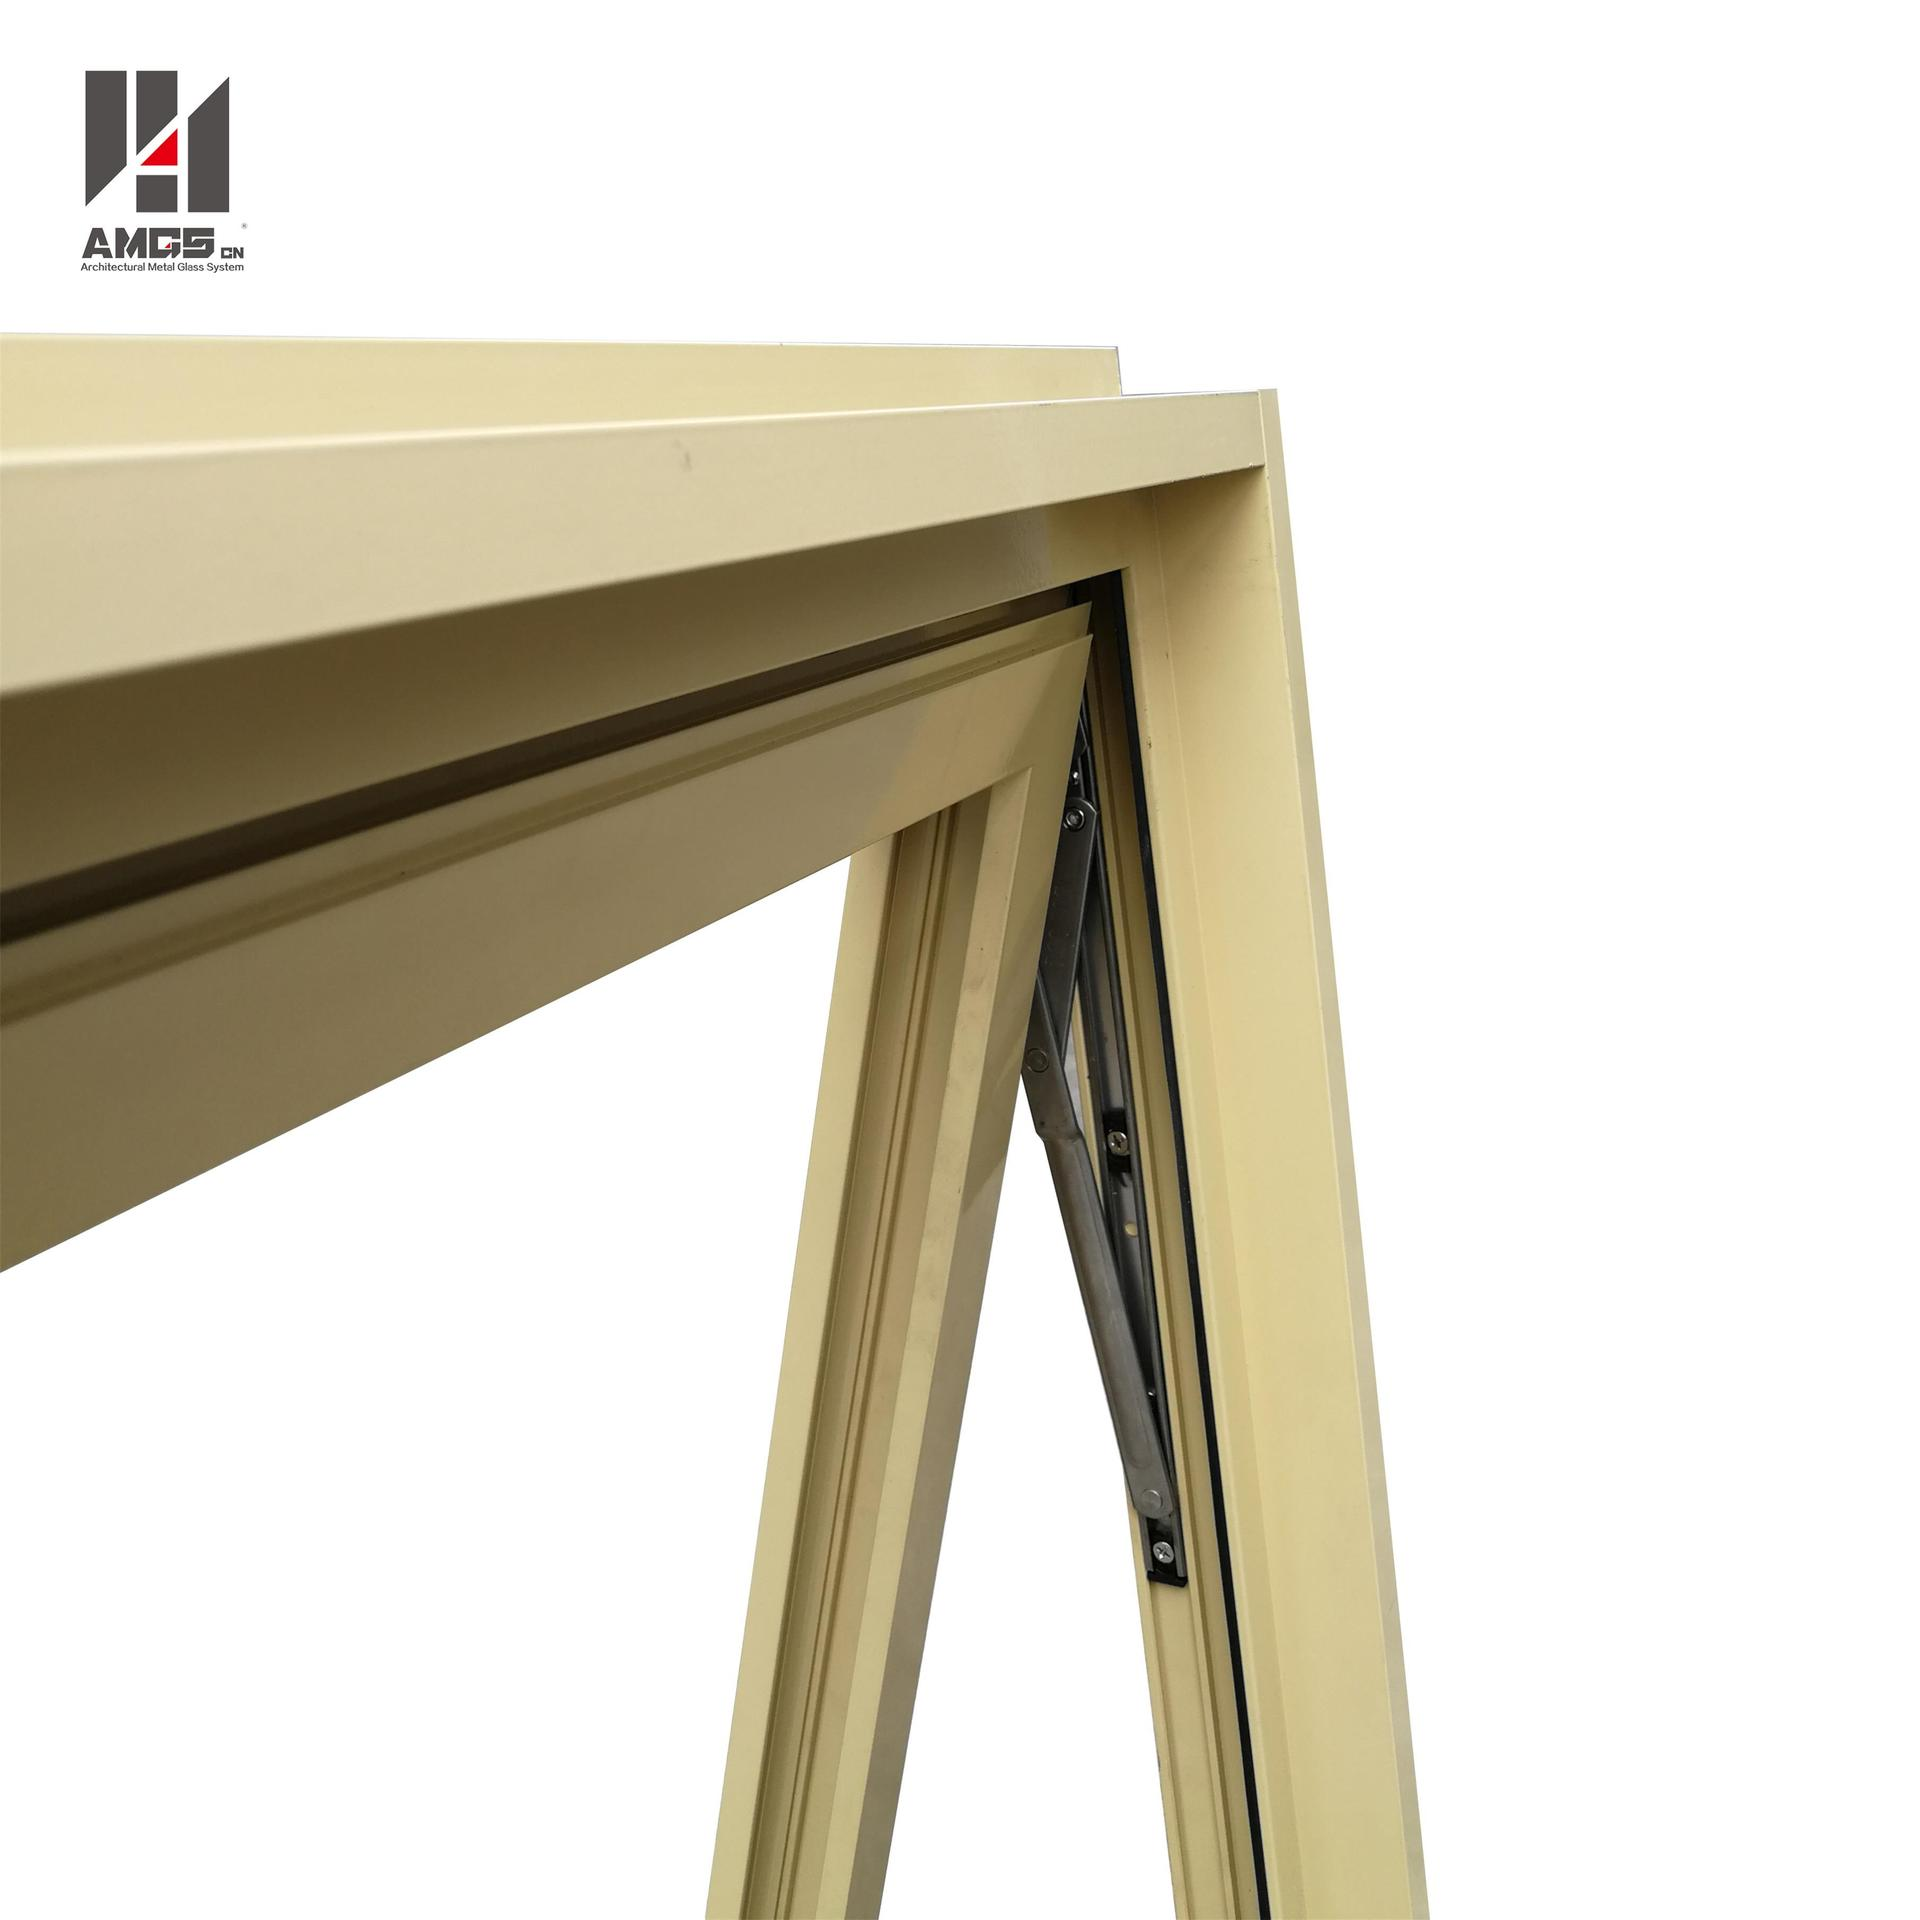 Aluminum Awning Window For Australian Standard With Chain Winder